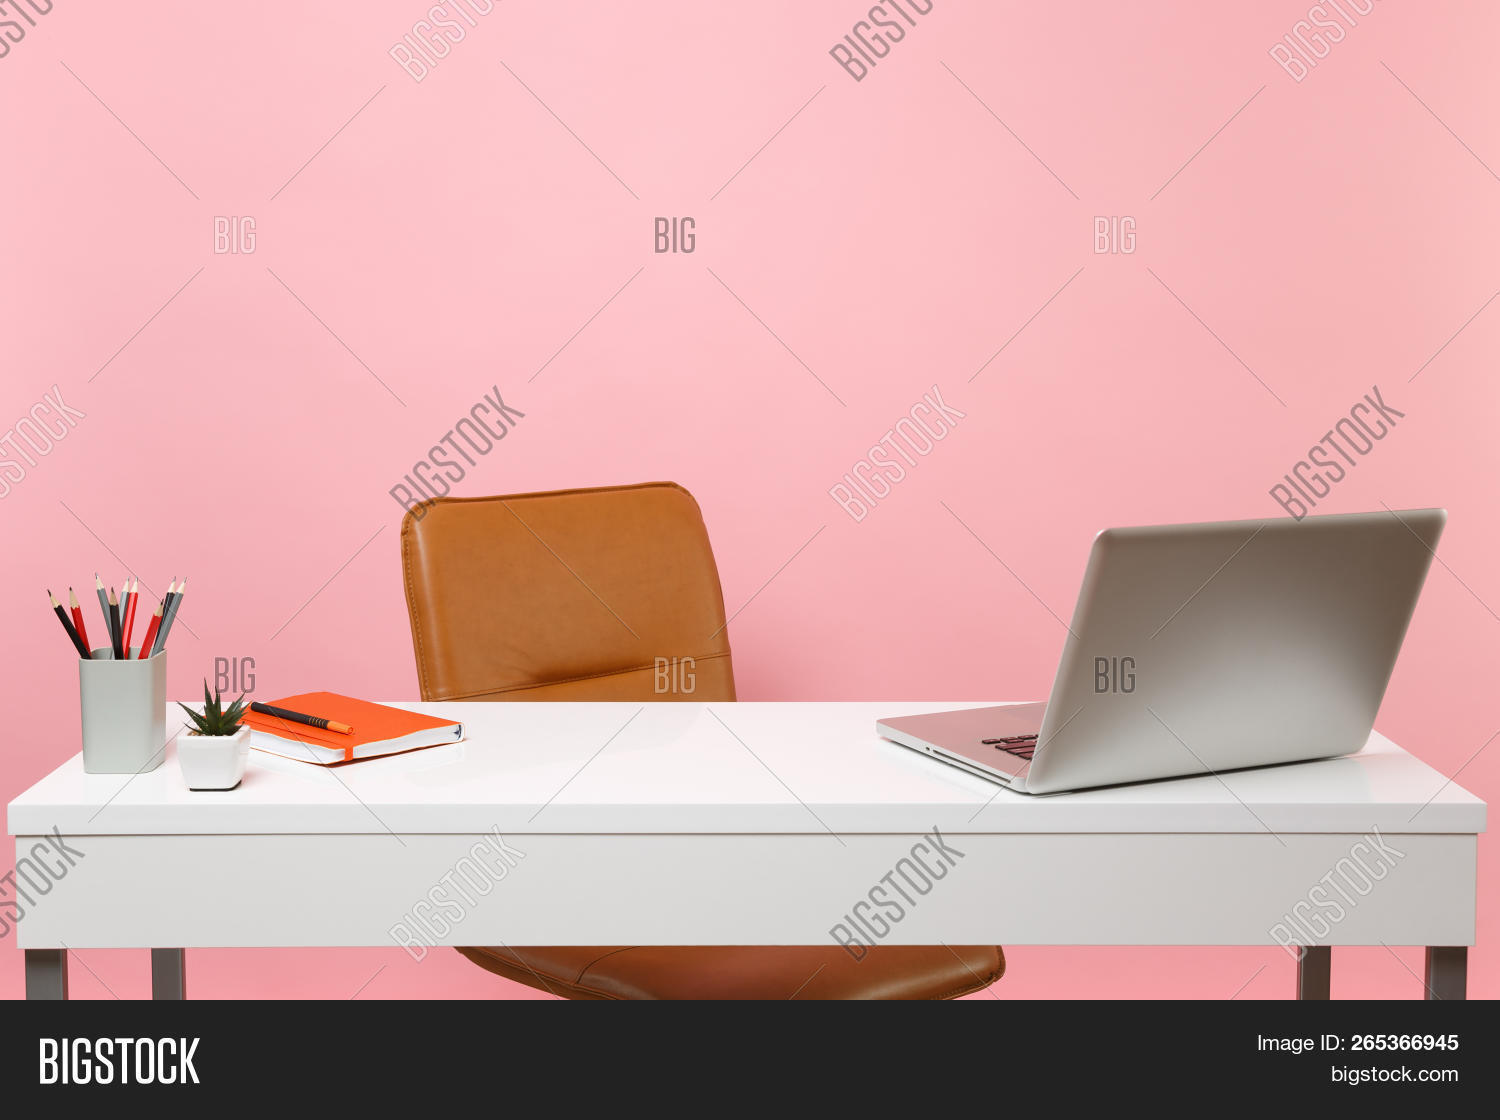 Swell White Table Desk Image Photo Free Trial Bigstock Ncnpc Chair Design For Home Ncnpcorg